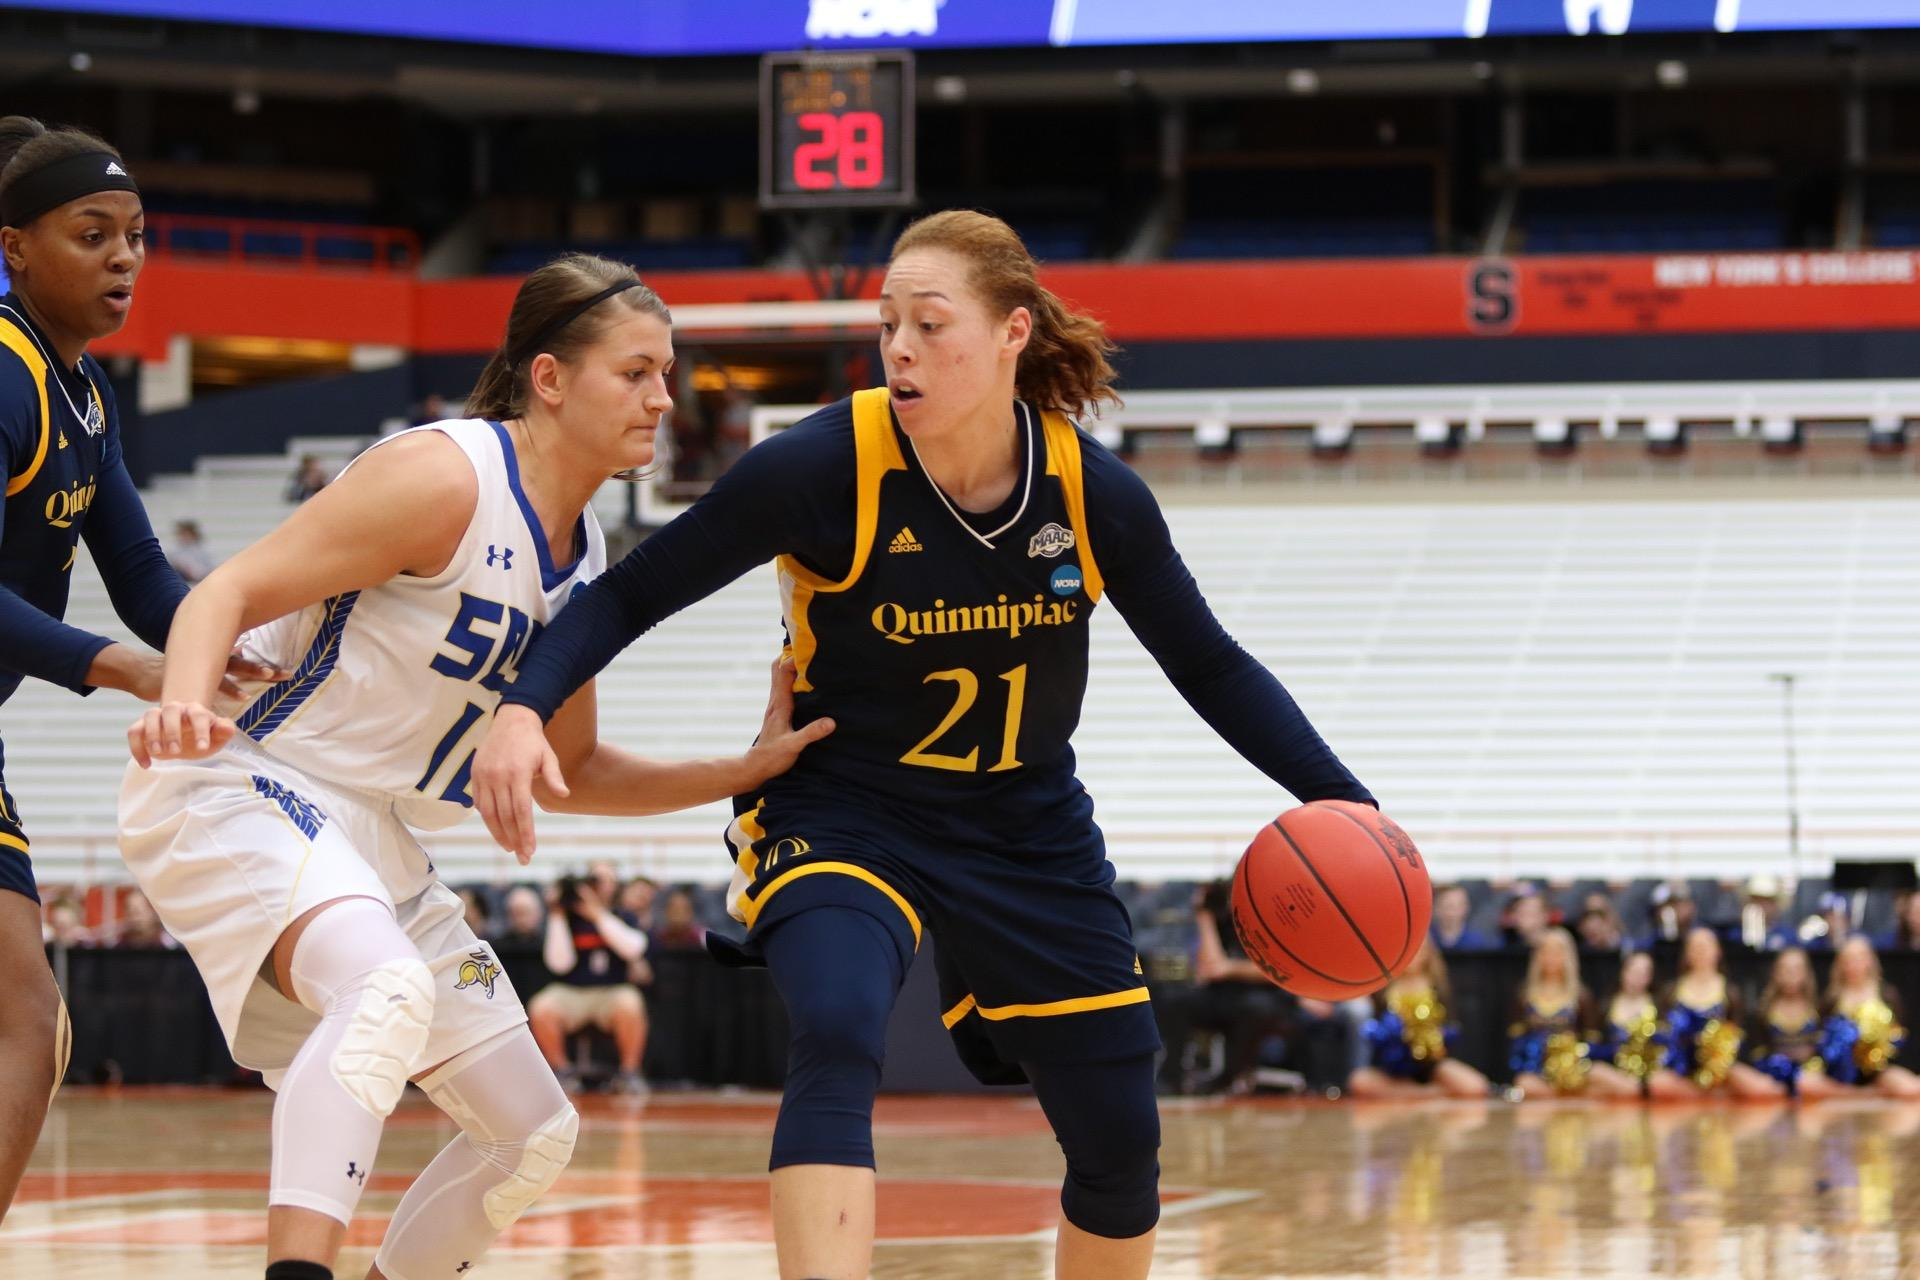 Quinnipiac women's basketball closes season with first round loss in NCAA Tournament